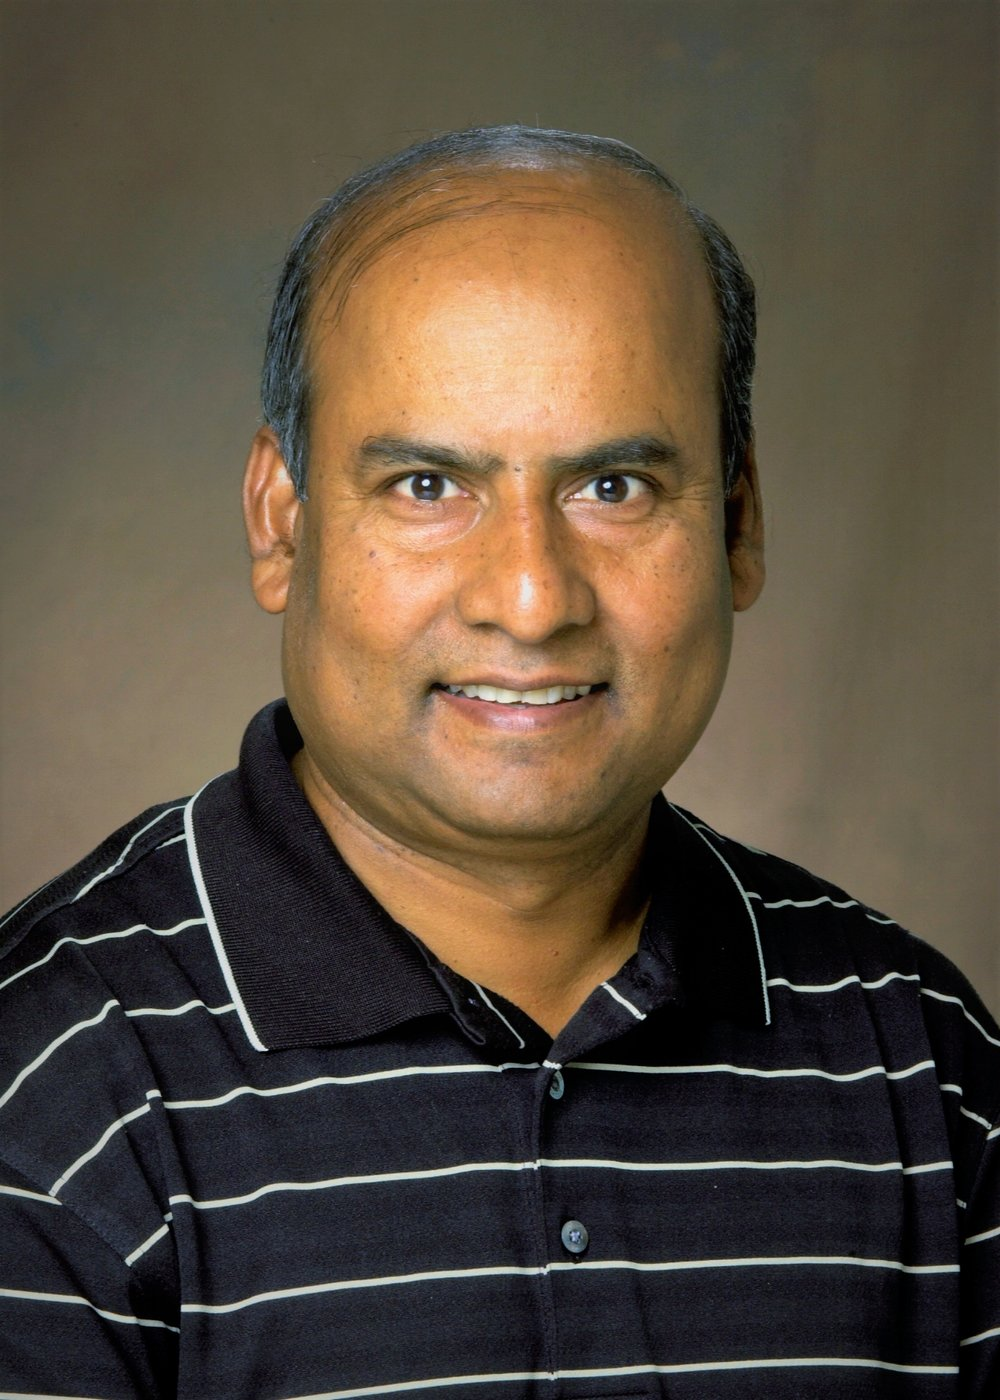 Mukhlesur Rahman - Dr. Mukhlesur Rahman is an Assistant Professor at the Department of Plant Sciences, North Dakota State University (NDSU), Fargo USA. He has been working as canola breeder and geneticists in the department since 2008. Recently, he has taken the responsibility of NDSU flax breeding program from July 2017. Dr. Rahman has received his Ph.D. degree in plant breeding and genomics from the University of Manitoba, Canada in 2007. He received his M.S. degree in biotechnology from Tokyo University of Agriculture and Technology in 2003, and M.Sc.Ag. degree in genetics and plant breeding from Bangladesh Agricultural University in 1995. He served as a faculty member (Assistant Professor) in the Department of Genetics and Plant Breeding of Bangladesh Agricultural University from 1996 to 2007. He also served as Scientific Officer (Oilseed breeding) at Bangladesh Agricultural Research Institute from 1993 to 1996. Dr. Rahman's expertise is in the area of plant breeding, genetics study, and genomics analysis for oilseed crops especially rapeseed/canola and flax. He has been utilizing double haploid and molecular marker technology in the breeding program. Dr. Rahman has received a licensing agreement with INRA, France for Ogura-INRA-CMS and restorer system to utilize in canola hybrid breeding program. He has established a joint-hybrid research program with Monsanto and DL Seeds Inc. He also established an off-season (winter) breeding nursery in Chile to expedite the breeding cycle. Dr. Rahman has released two canola cultivars (roundup ready and conventional) and one flax cultivar in North Dakota from his program.